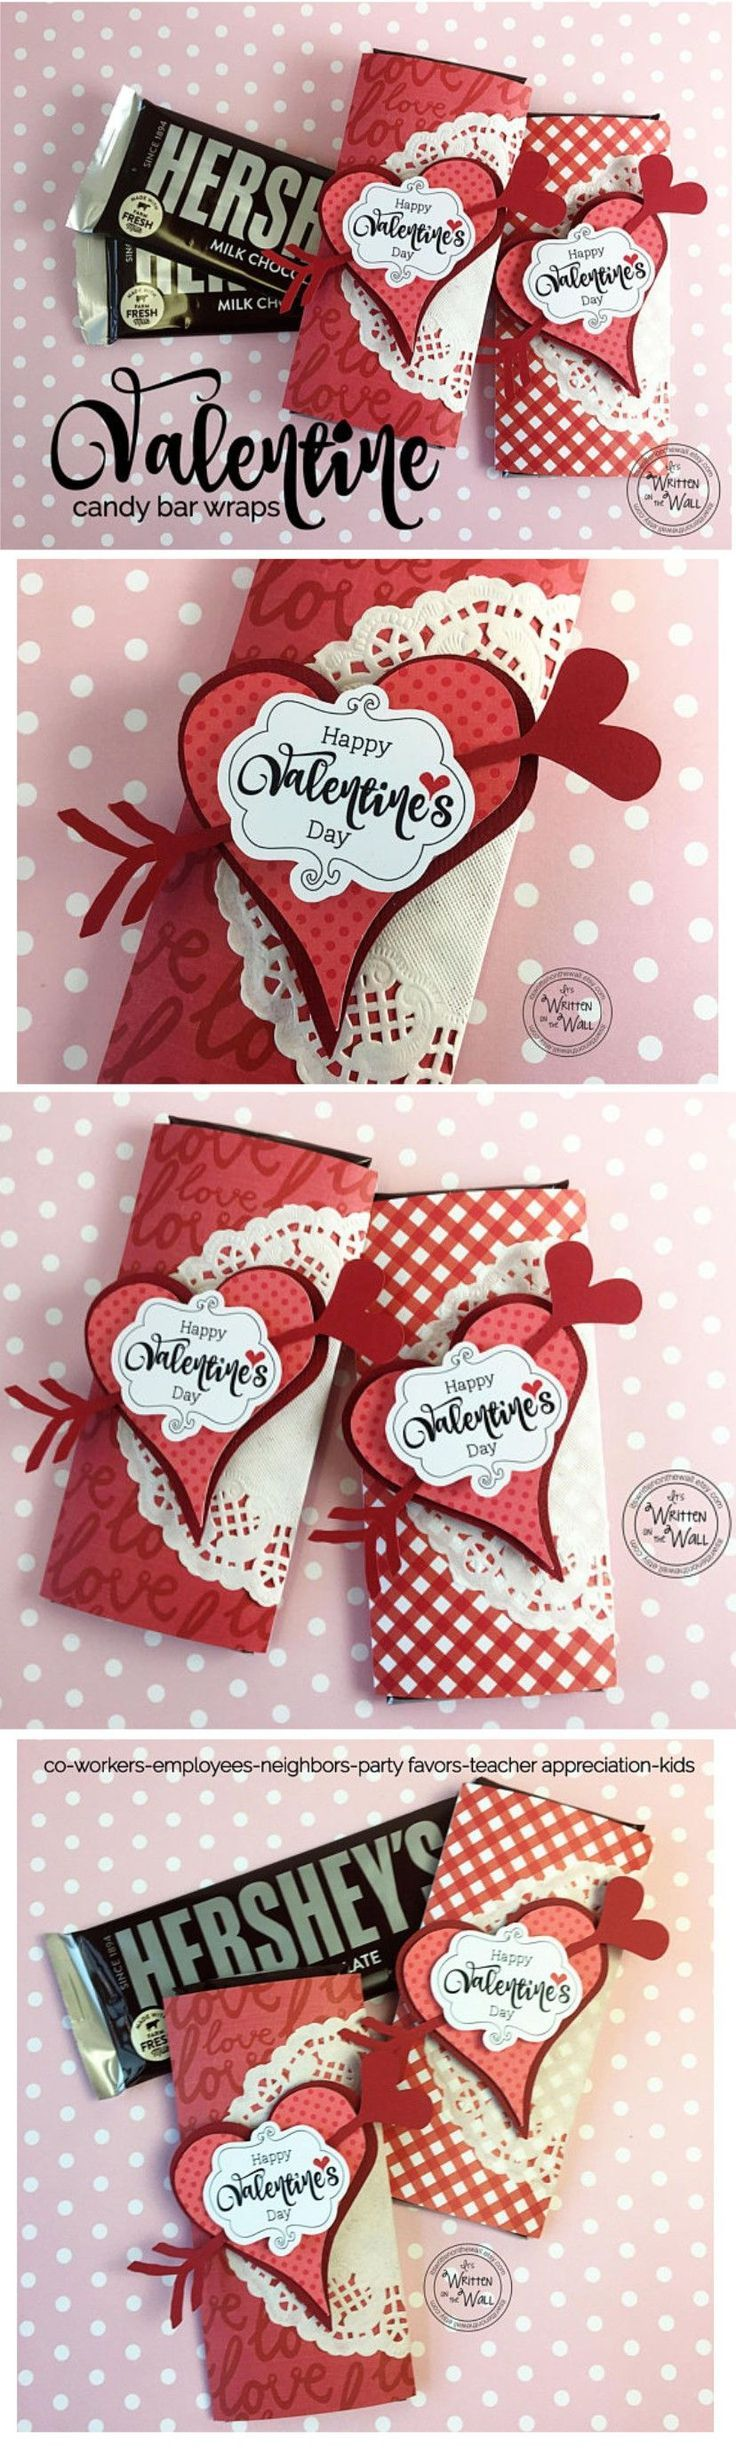 Valentines Day Quotes  : Valentines Day Candy Bar Wrappers-Co-Worker treats-Employee gifts, Party Favors,...  #ValentineDayQuotes https://quotesayings.net/days/valentine-day-quotes/valentines-day-quotes-valentines-day-candy-bar-wrappers-co-worker-treats-employee-gifts-party-favors/